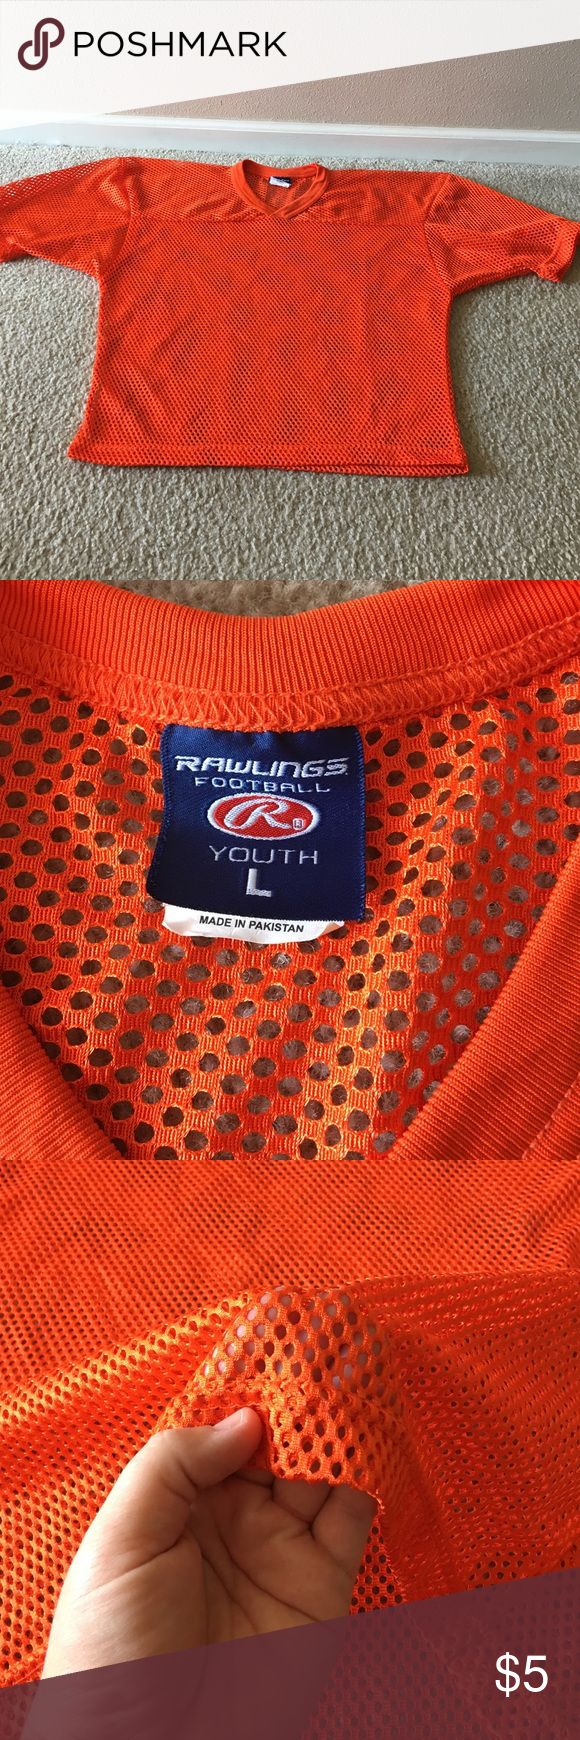 Youth football jersey Youth practice football jersey size large Rawlings Other